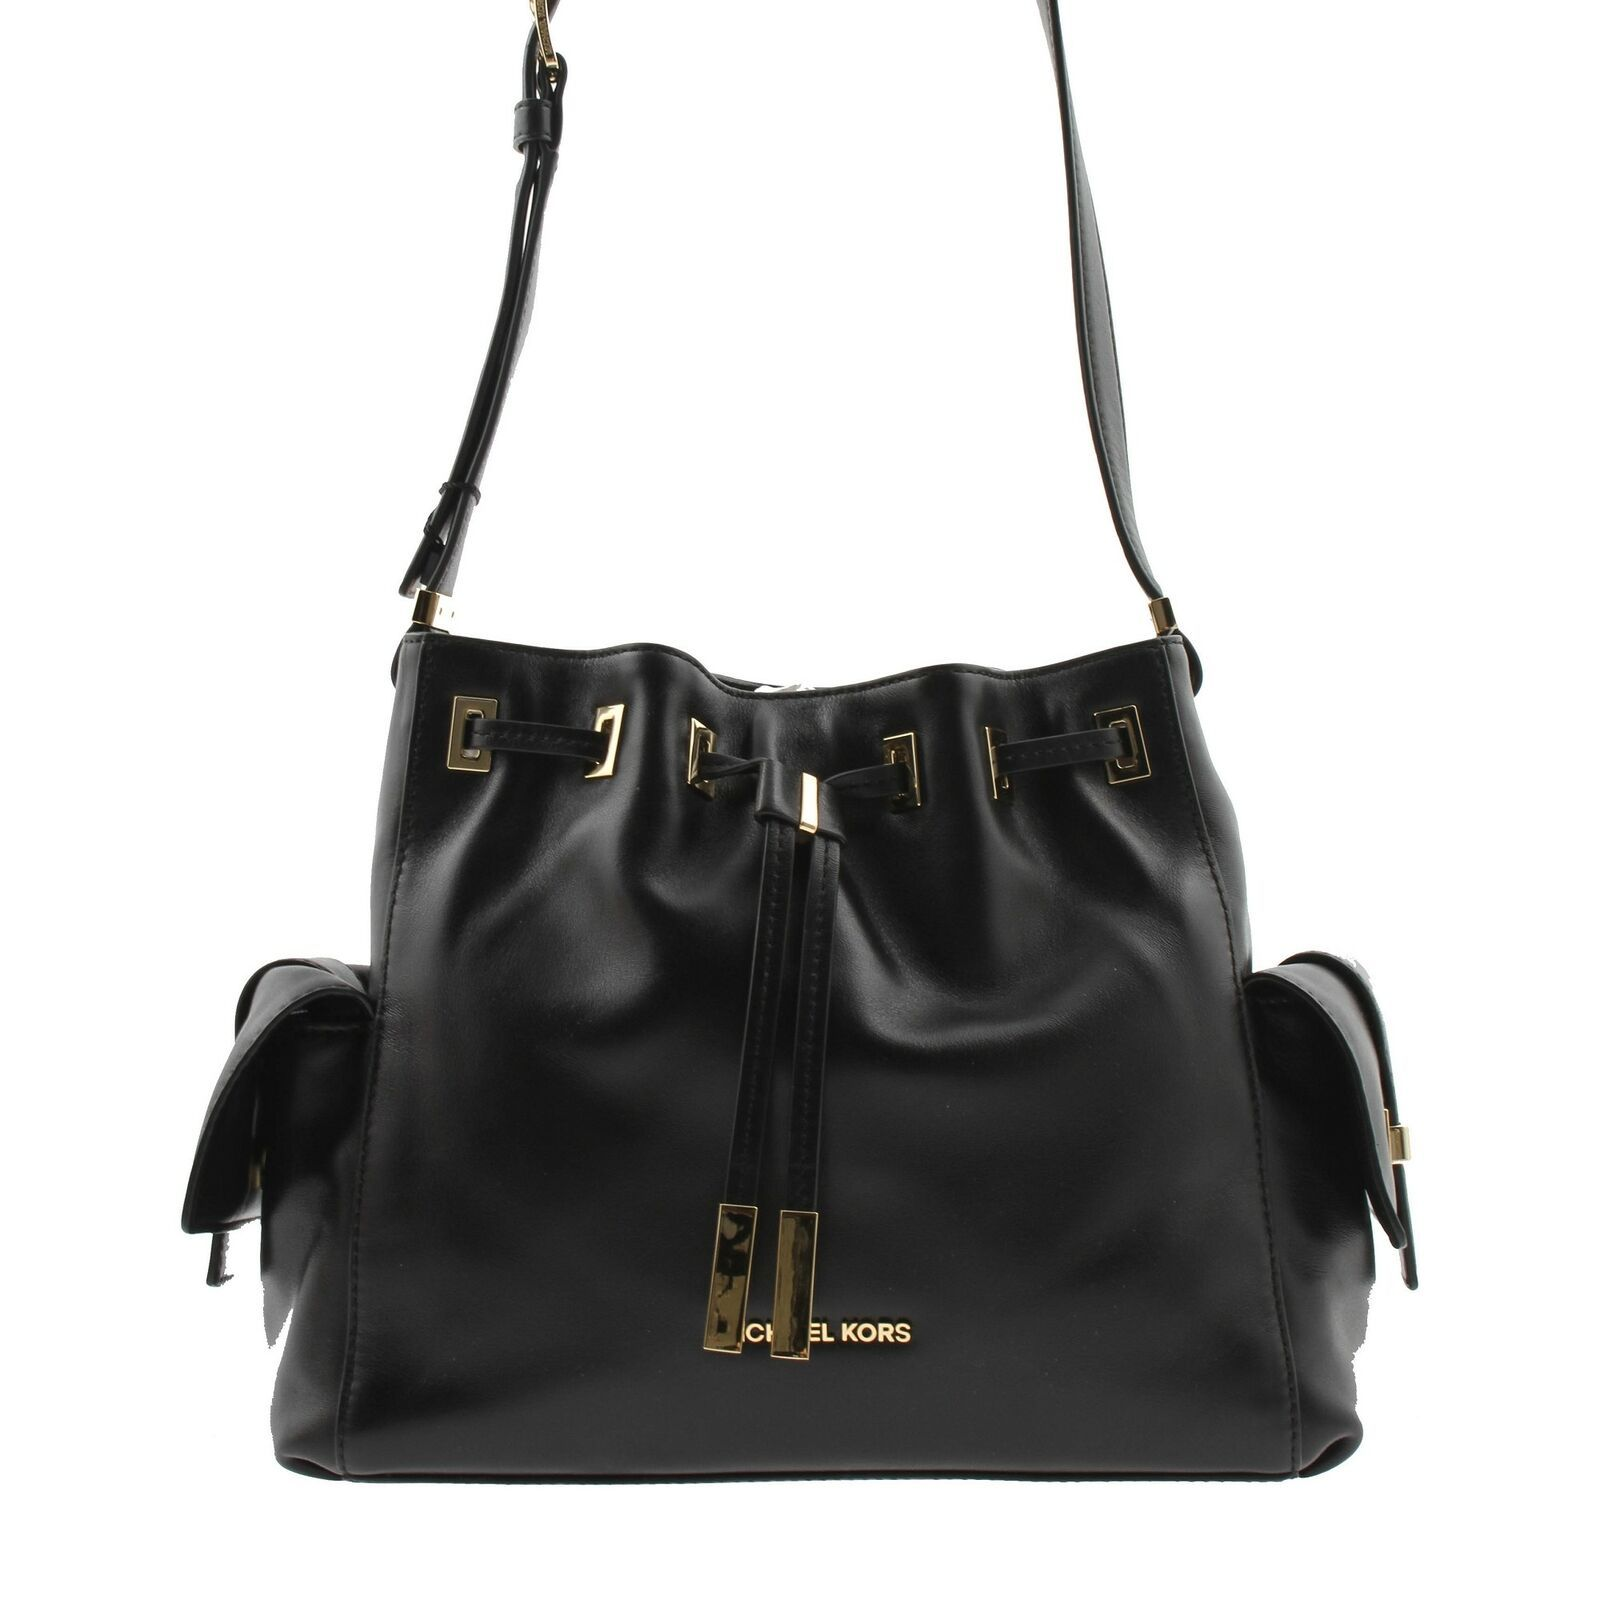 b8ea06132aa0 NWT Authentic Michael Kors Marly Medium Drawstring Black Crossbody  30T5GYMM2L - $277.20